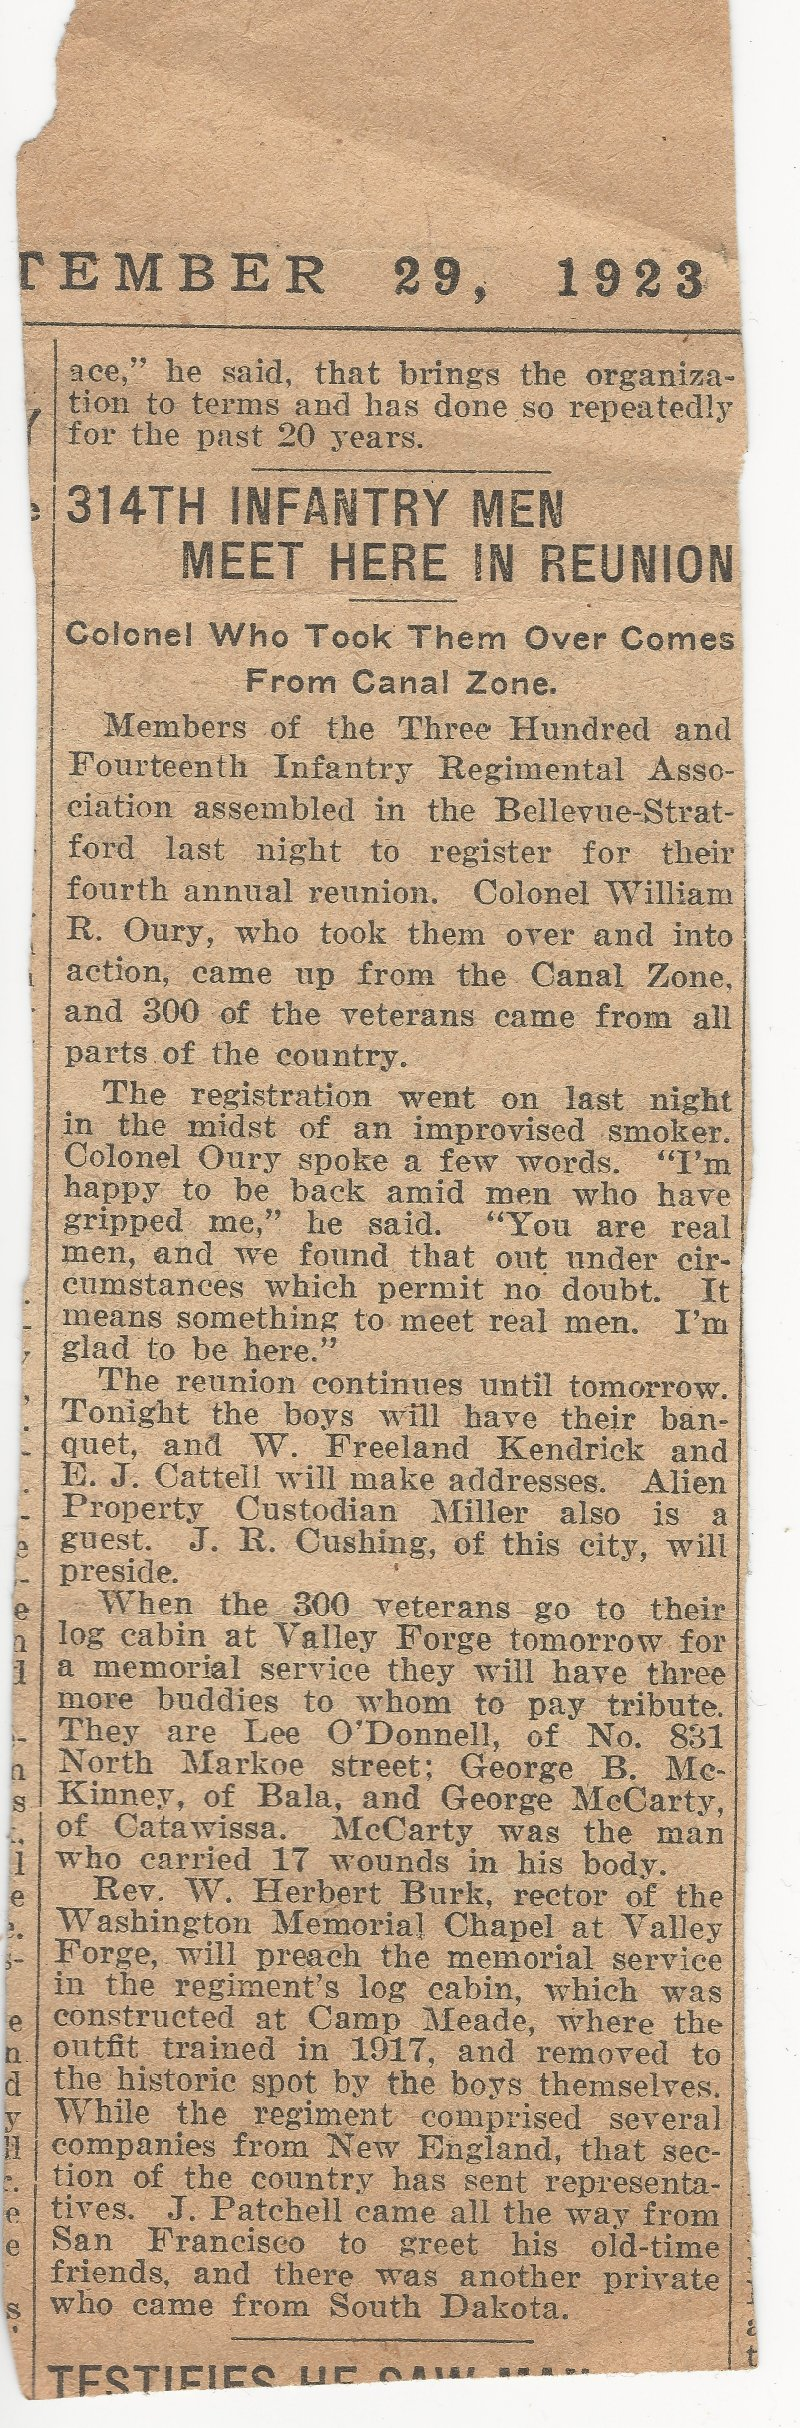 September 29 1923 newspaper article about 314 Infantry 1923 Reunion - probably The Philadelphia Inquirer newspaper